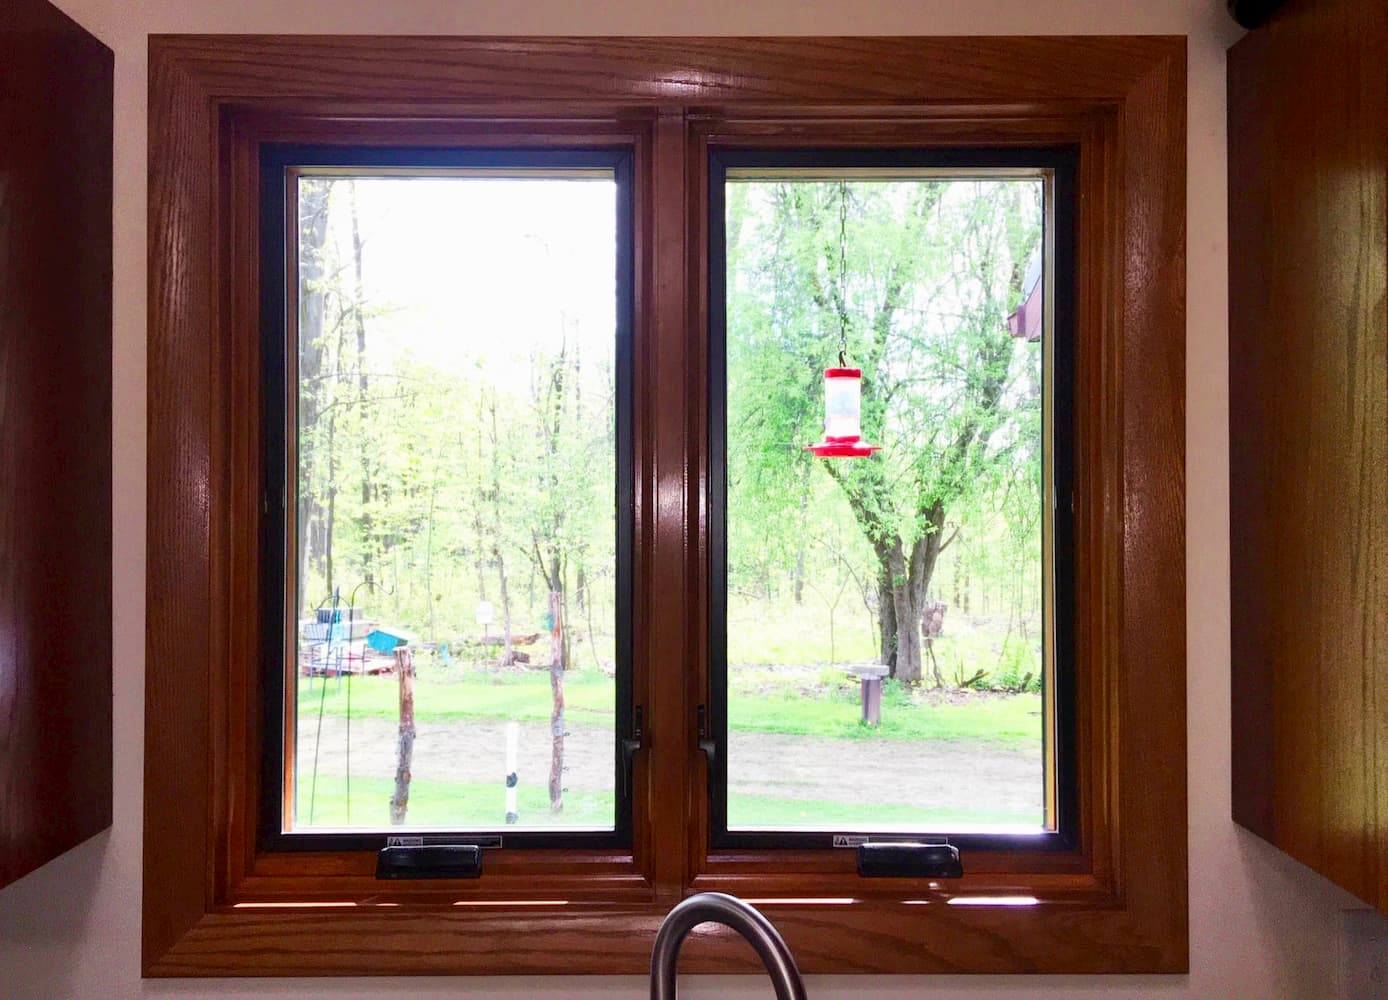 Interior view of new wood casement windows over kitchen sink.